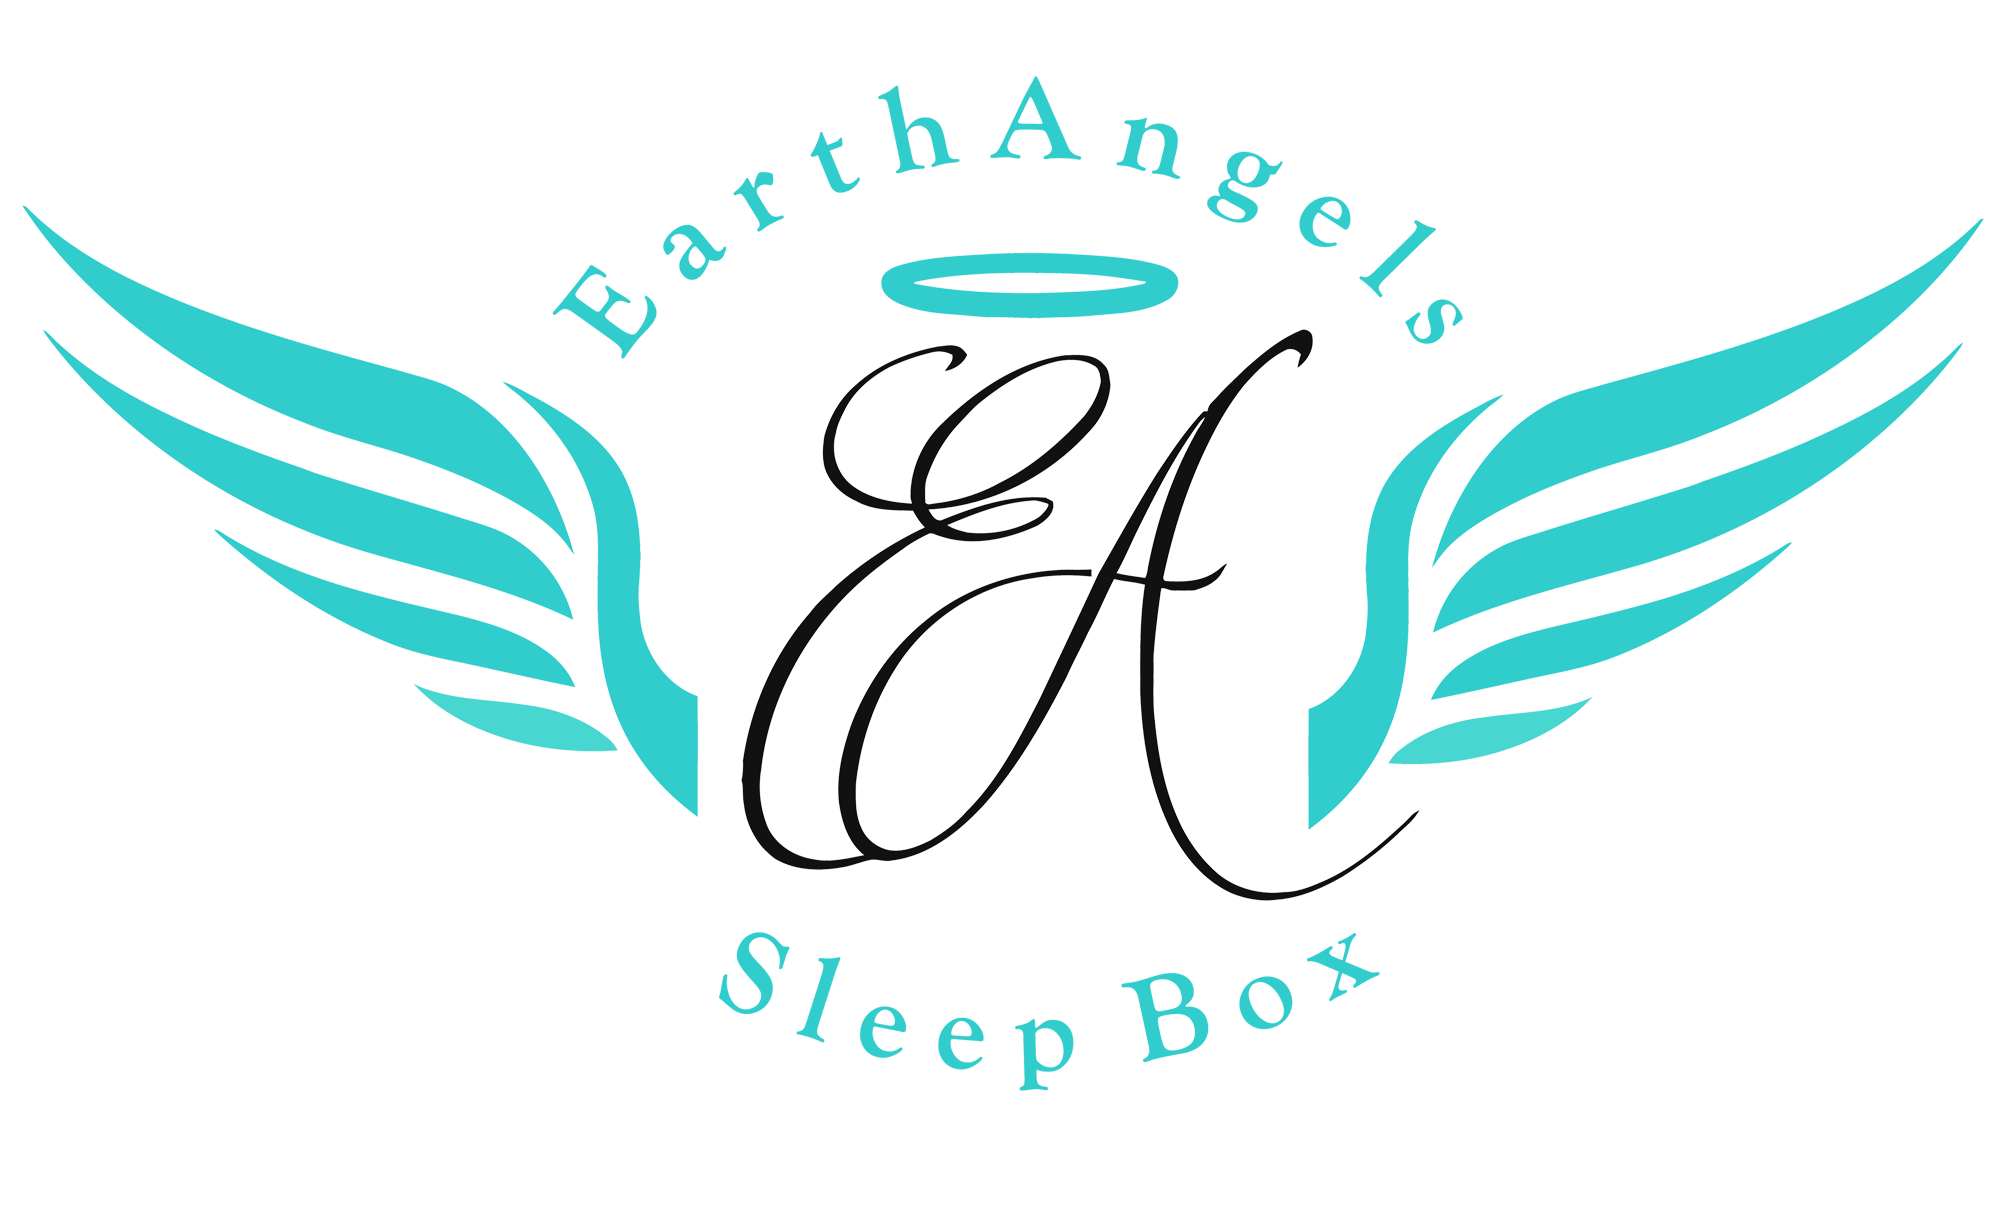 EarthAngels Sleep Box